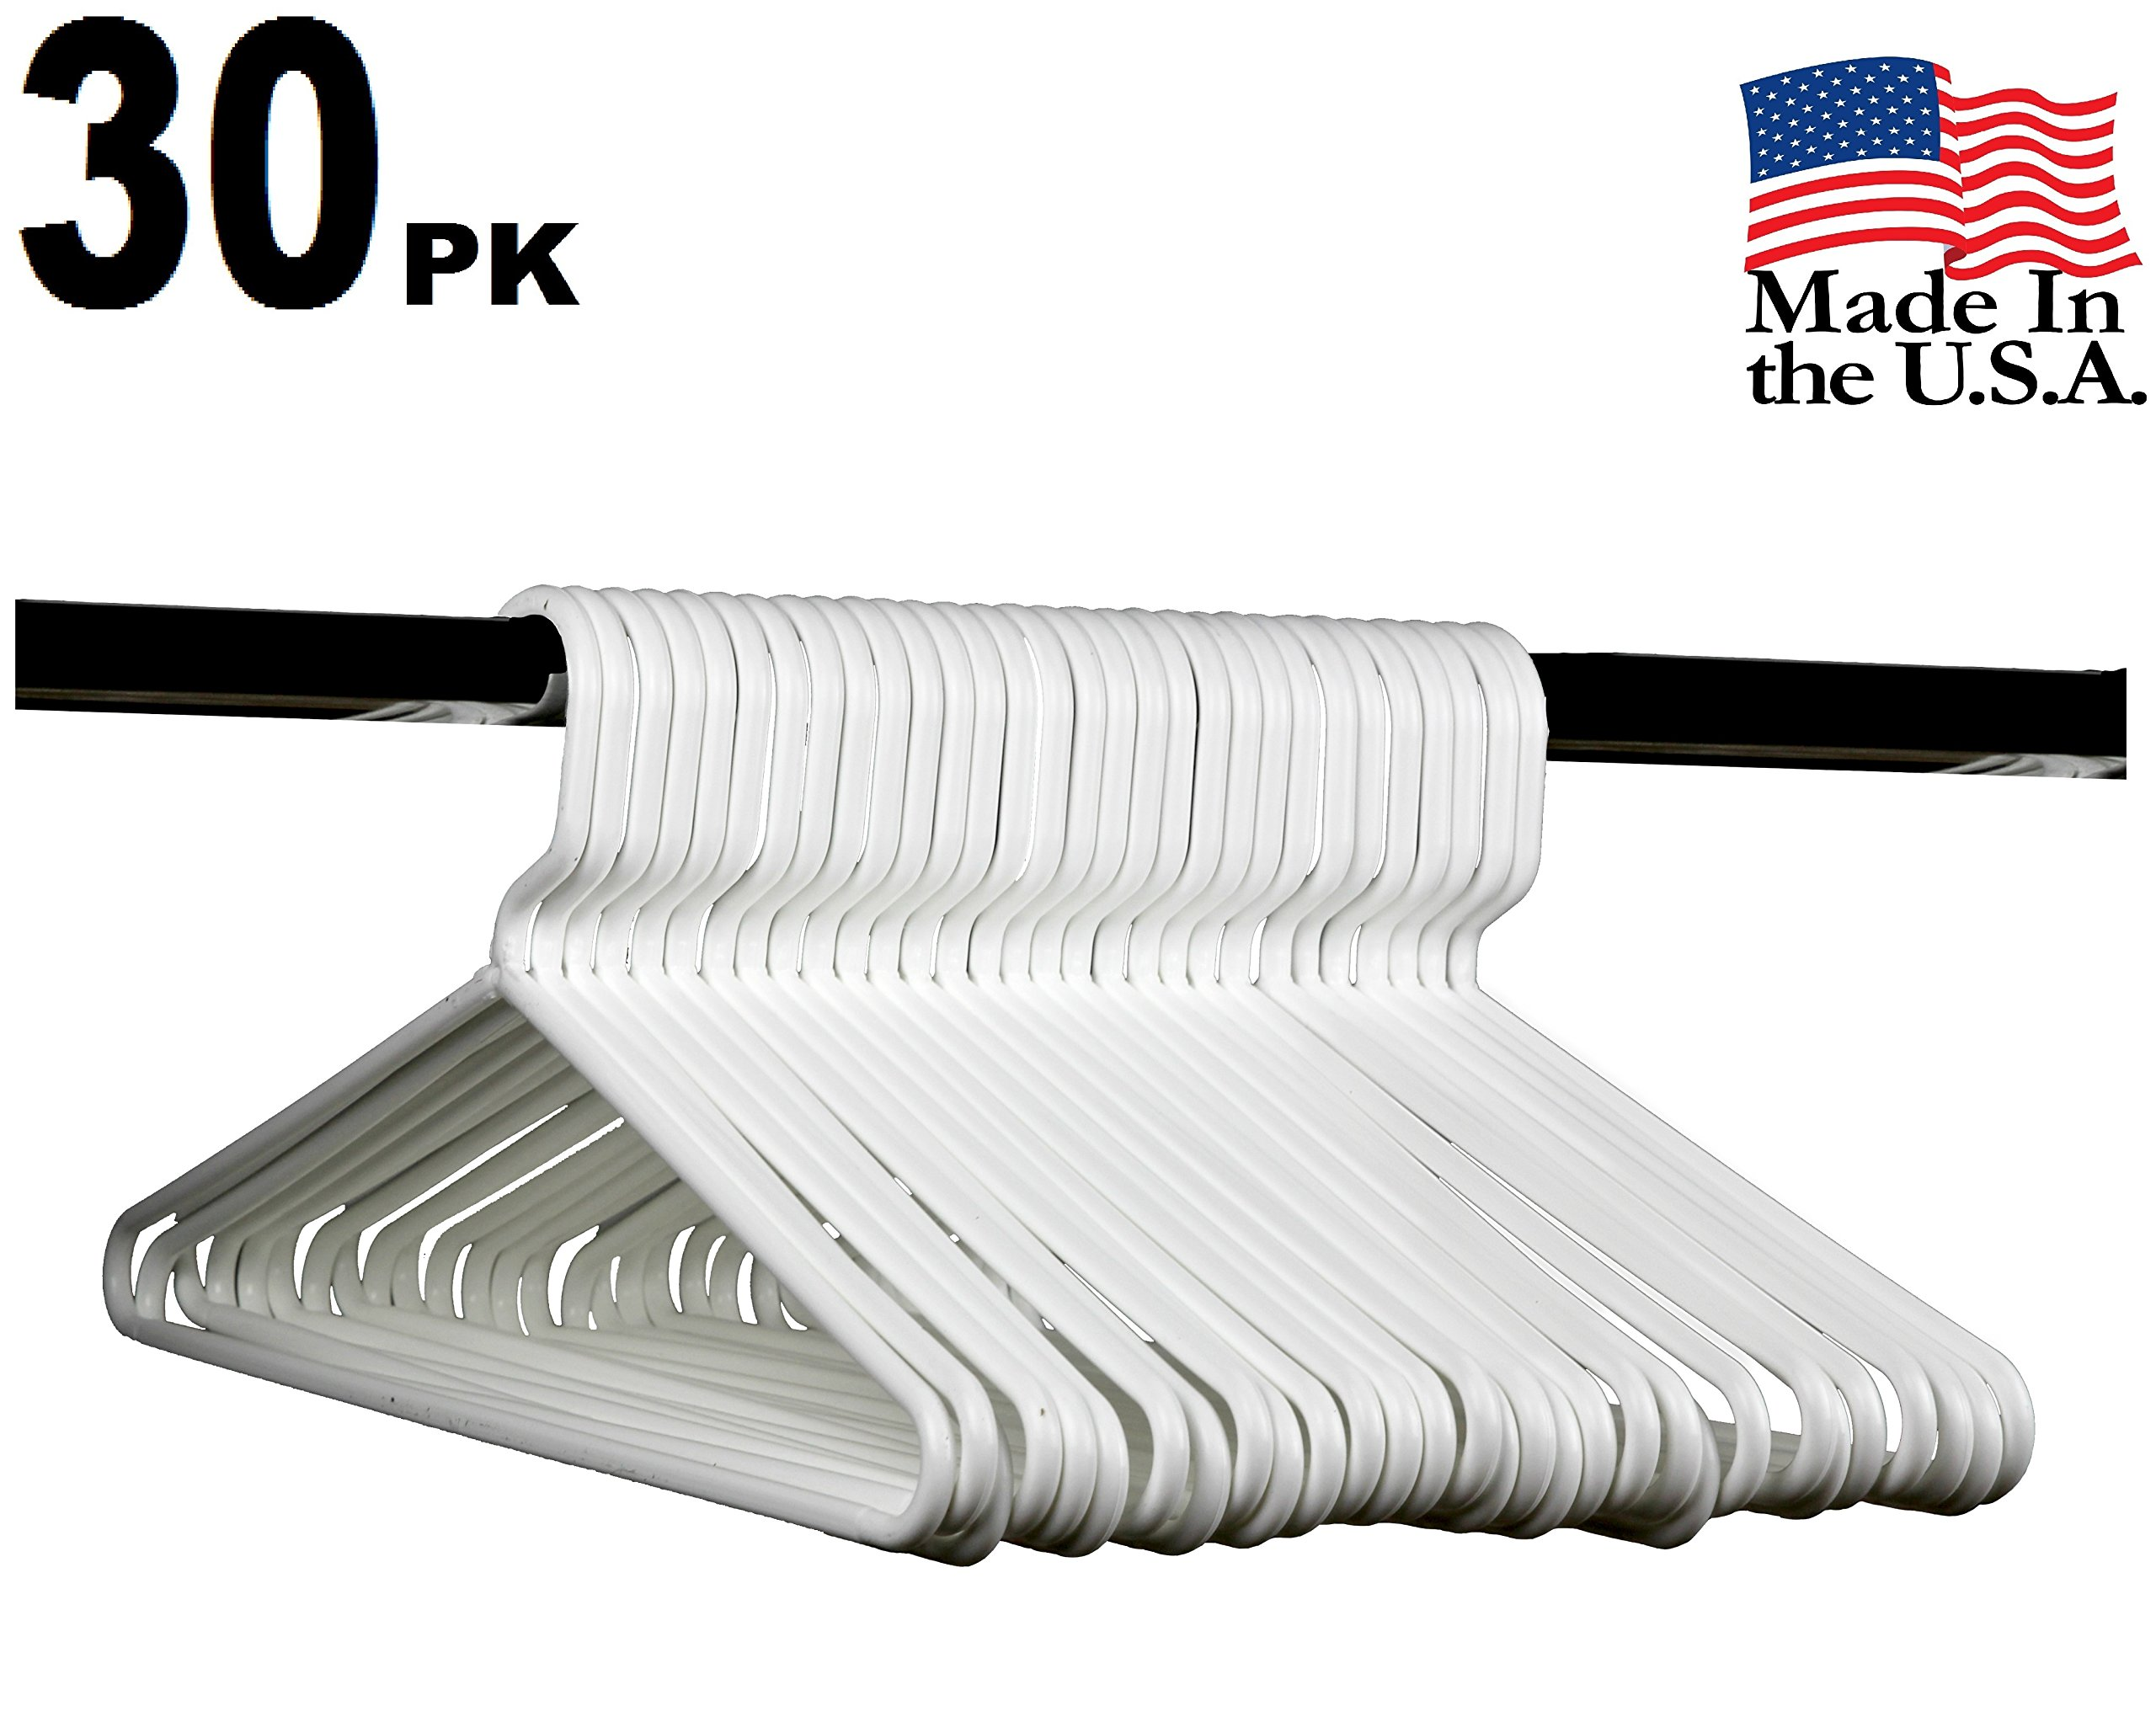 Best Durable Everyday Heavy-Duty Adult Thick Plastic Clothing Tubular Hangers - No Hooks, USA Made (Set of 30 Bright White)